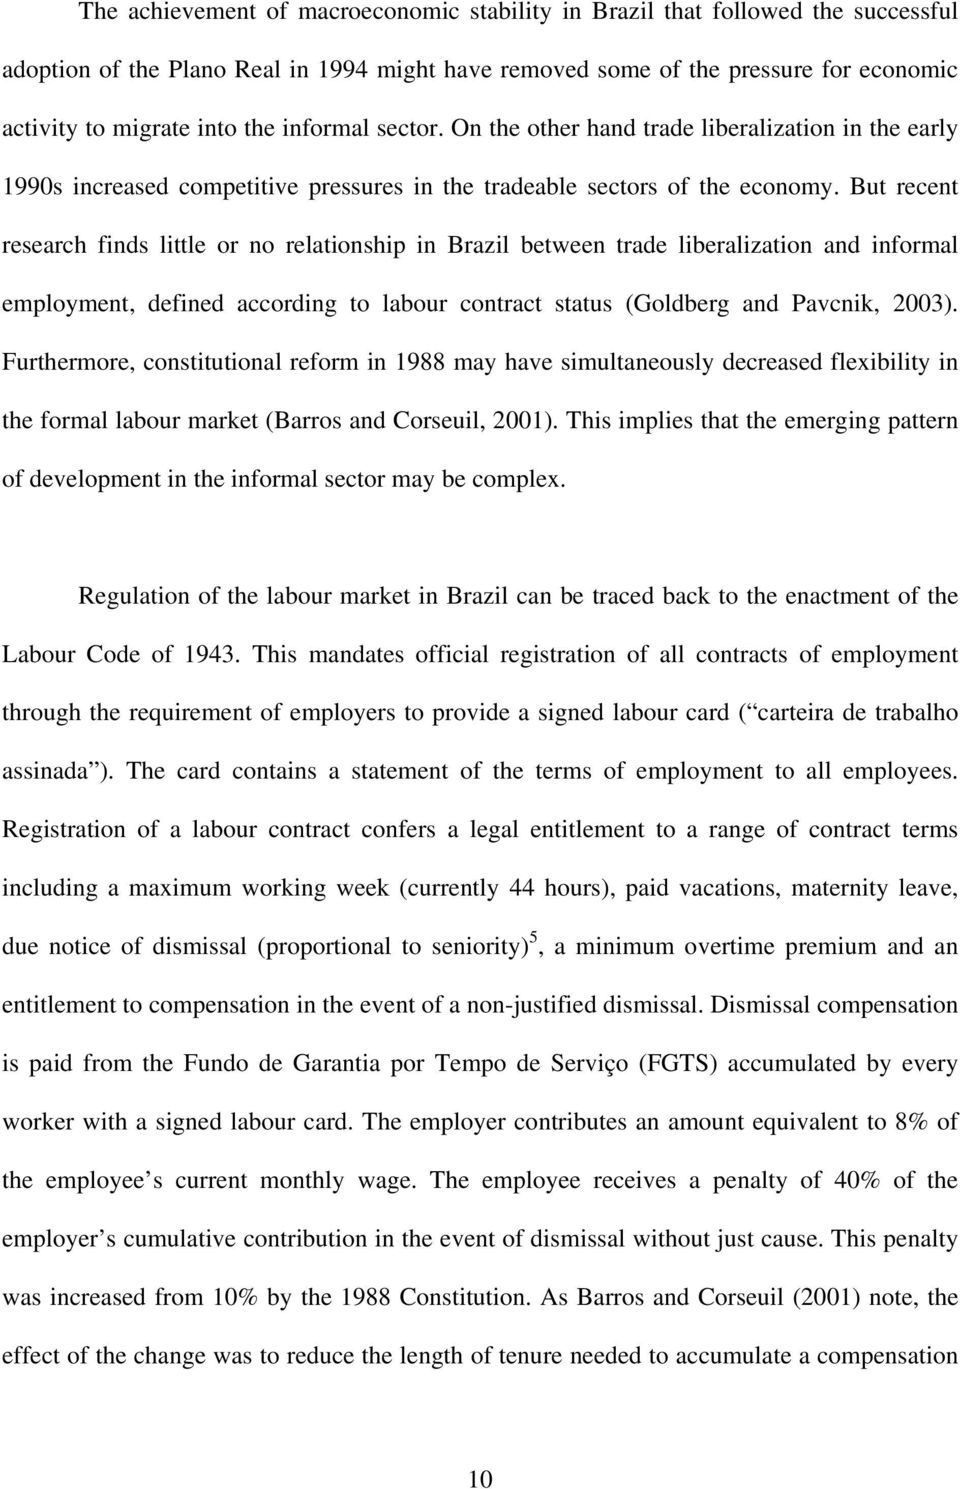 But recent research finds little or no relationship in Brazil between trade liberalization and informal employment, defined according to labour contract status (Goldberg and Pavcnik, 2003).